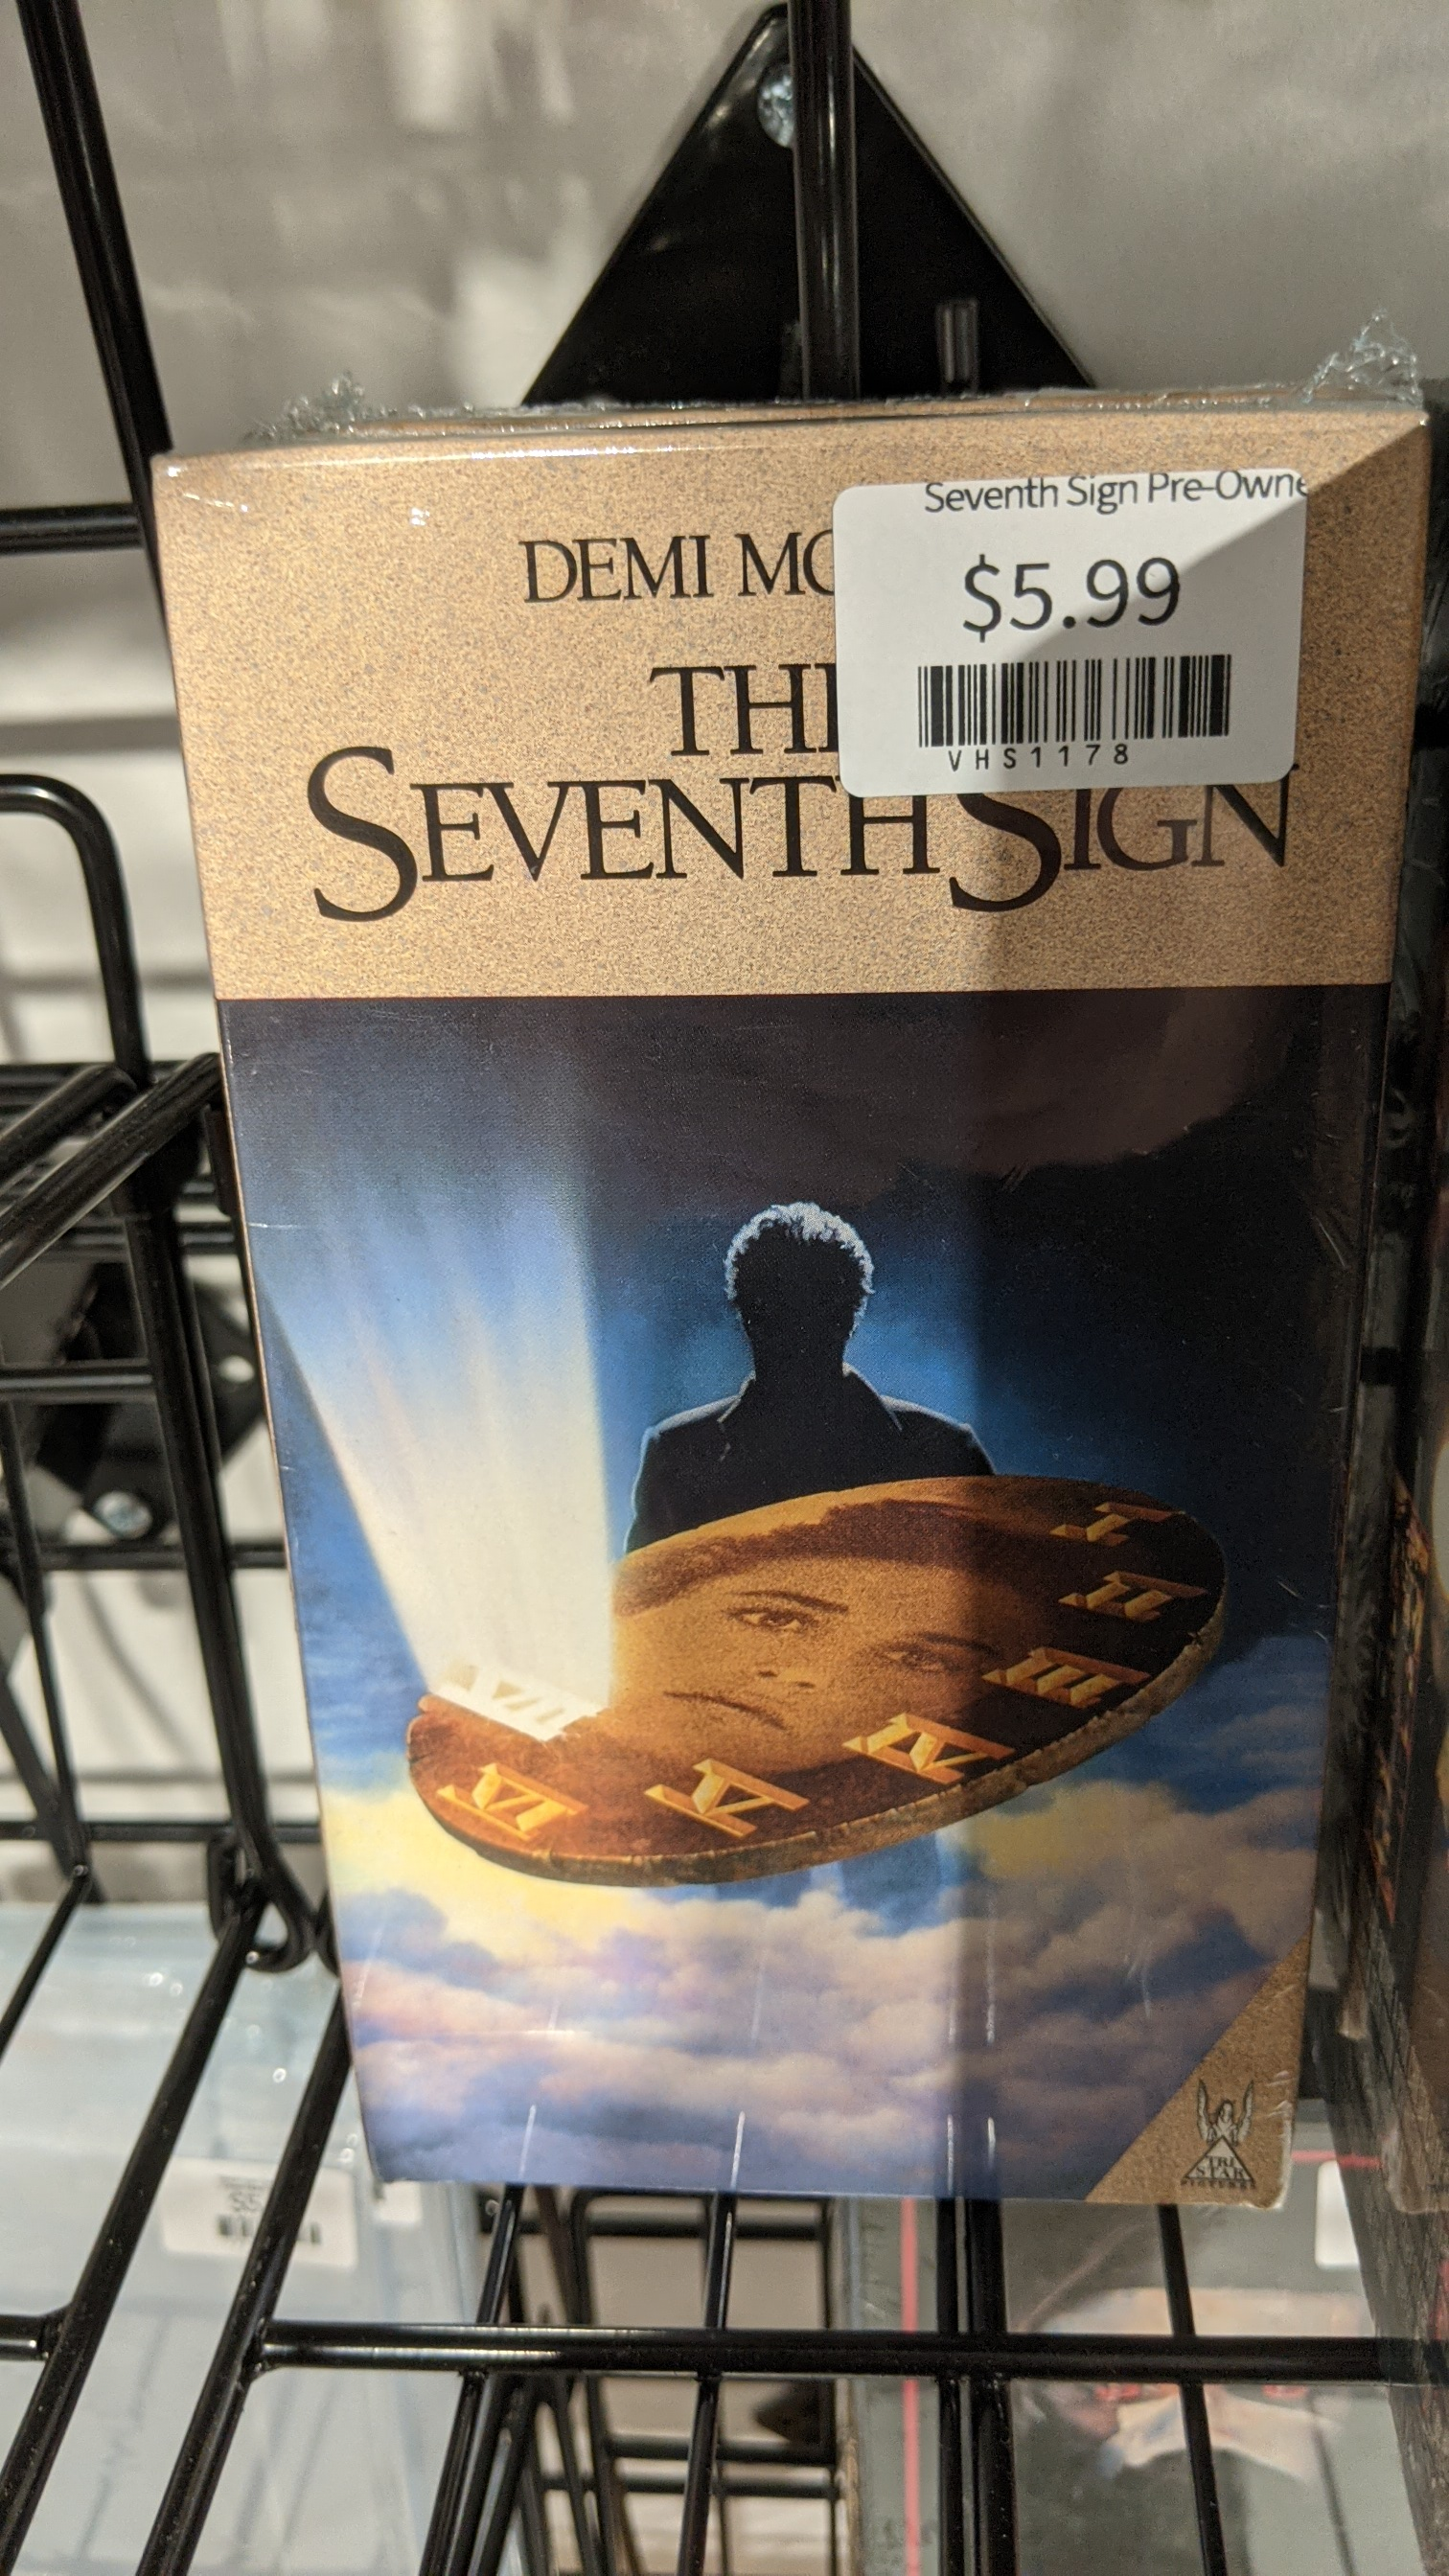 Seventh Sign Pre-Owned VHS